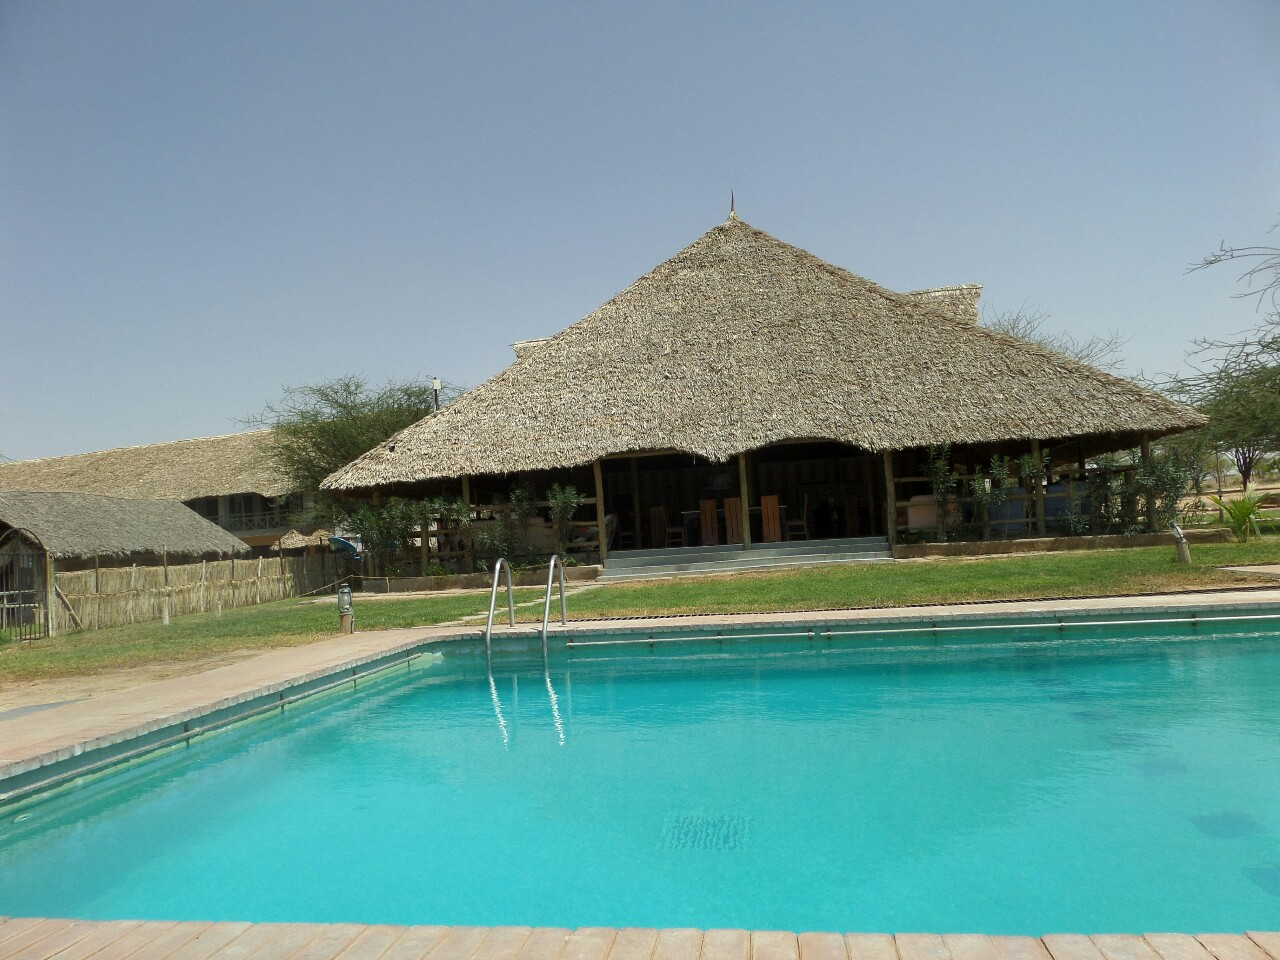 Cradle Tented Camp, Turkana, Kenya